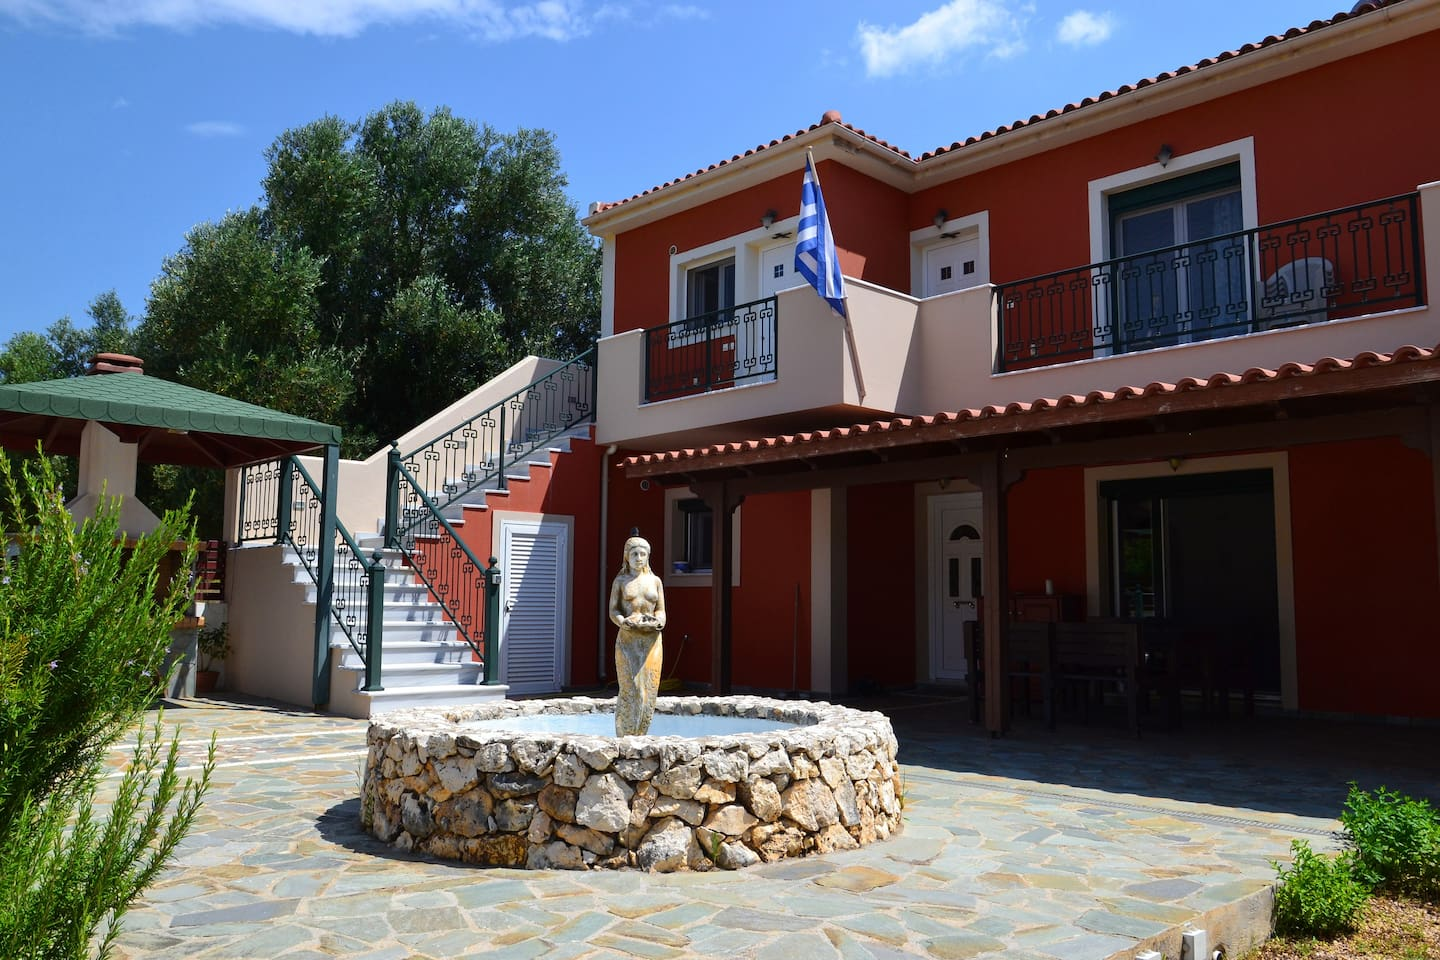 Kefalonia apartments: We hope, this 1 bedroom apartments in Dorizata will become comfy home during your Kefalonia holiday